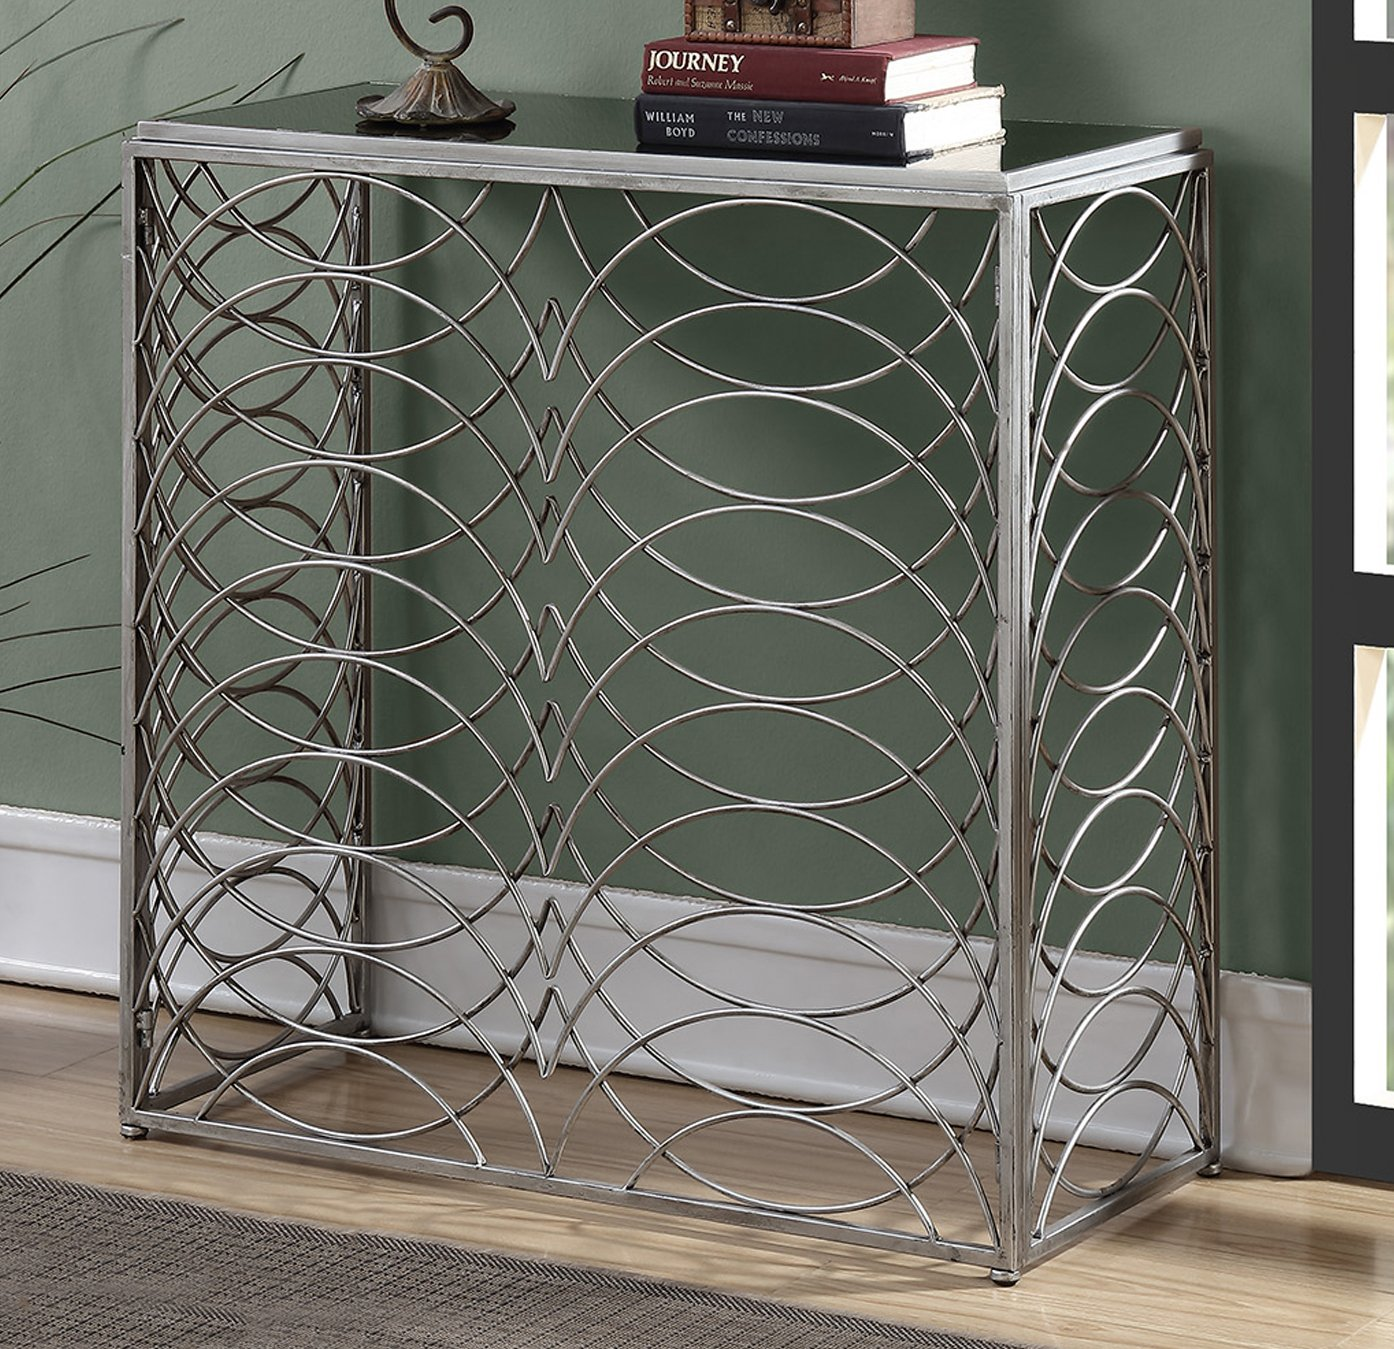 Convenience Concepts Gold Coast Tranquility Console Table, Silver Black Glass